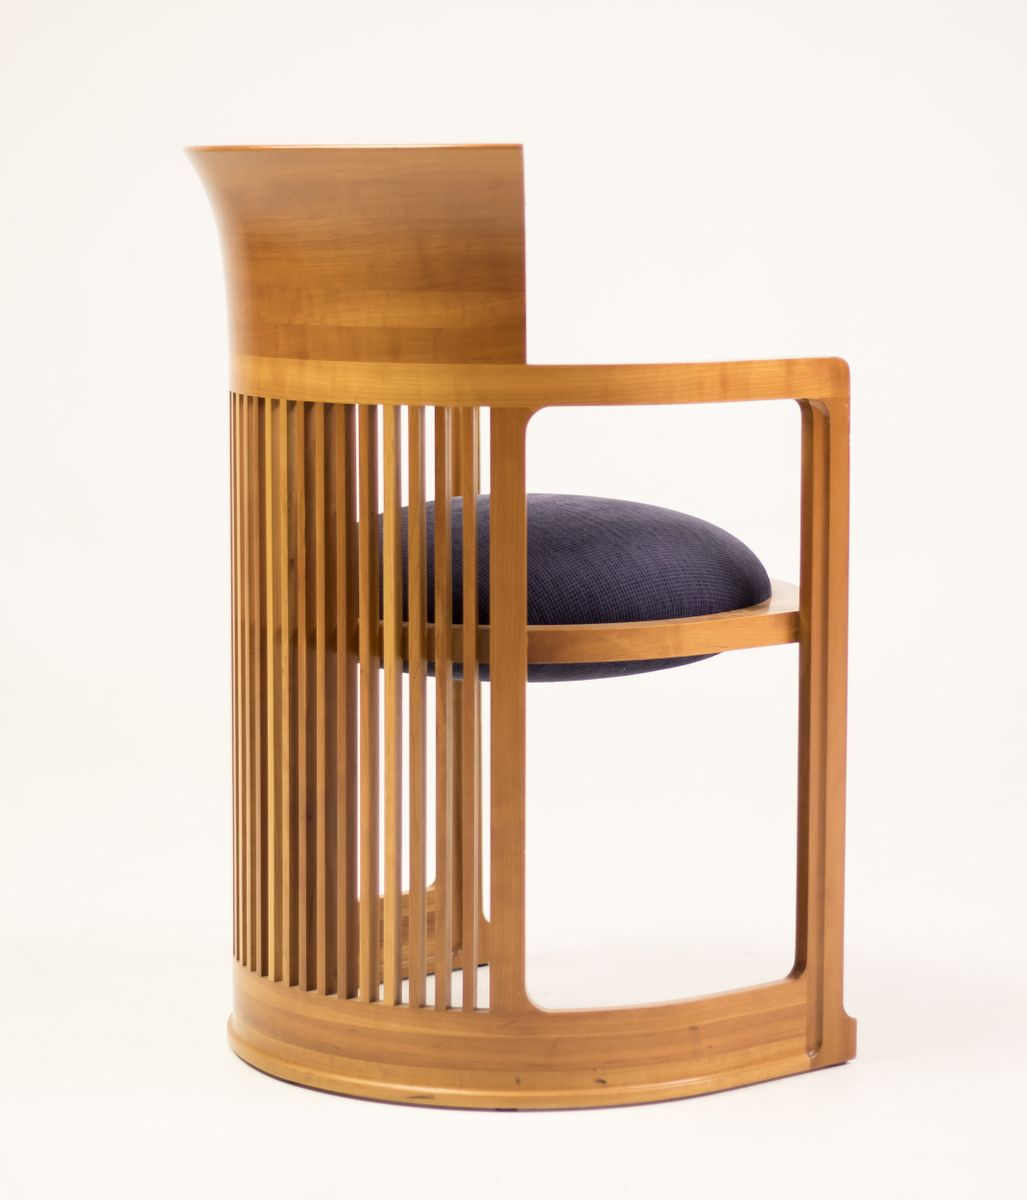 Barrel Table And Chairs For Sale: Dining Table And Barrel Chairs By Frank Lloyd Wright For